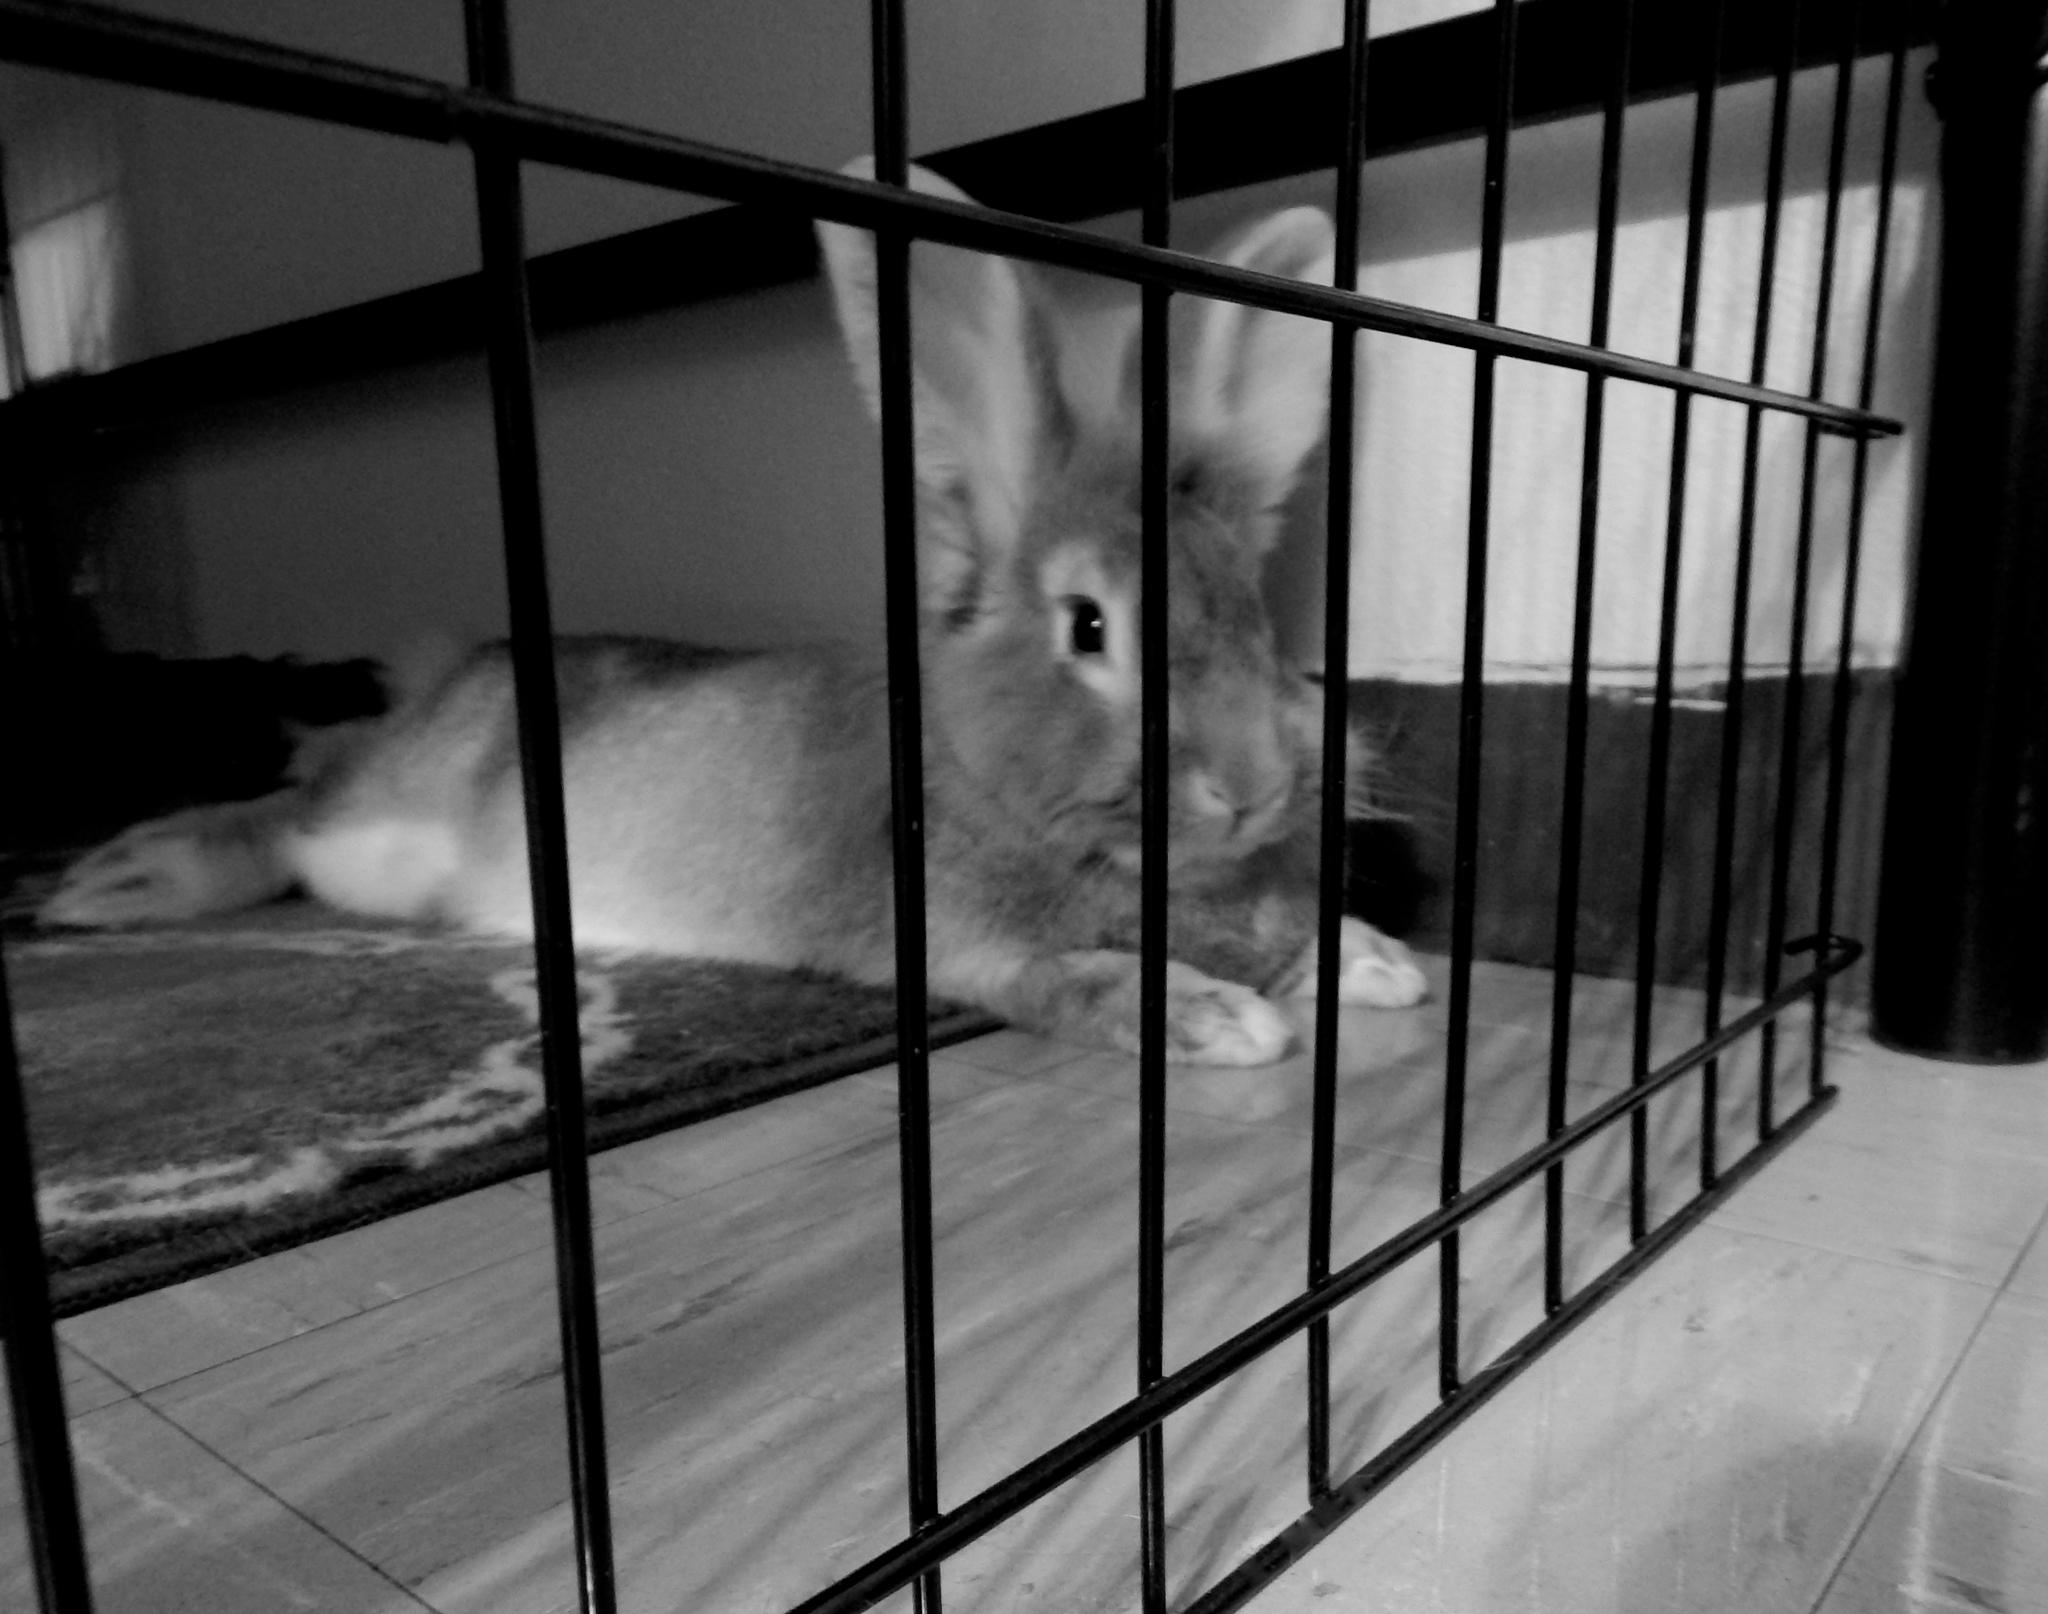 They Put Him Behind Bars by Whitney Thursday